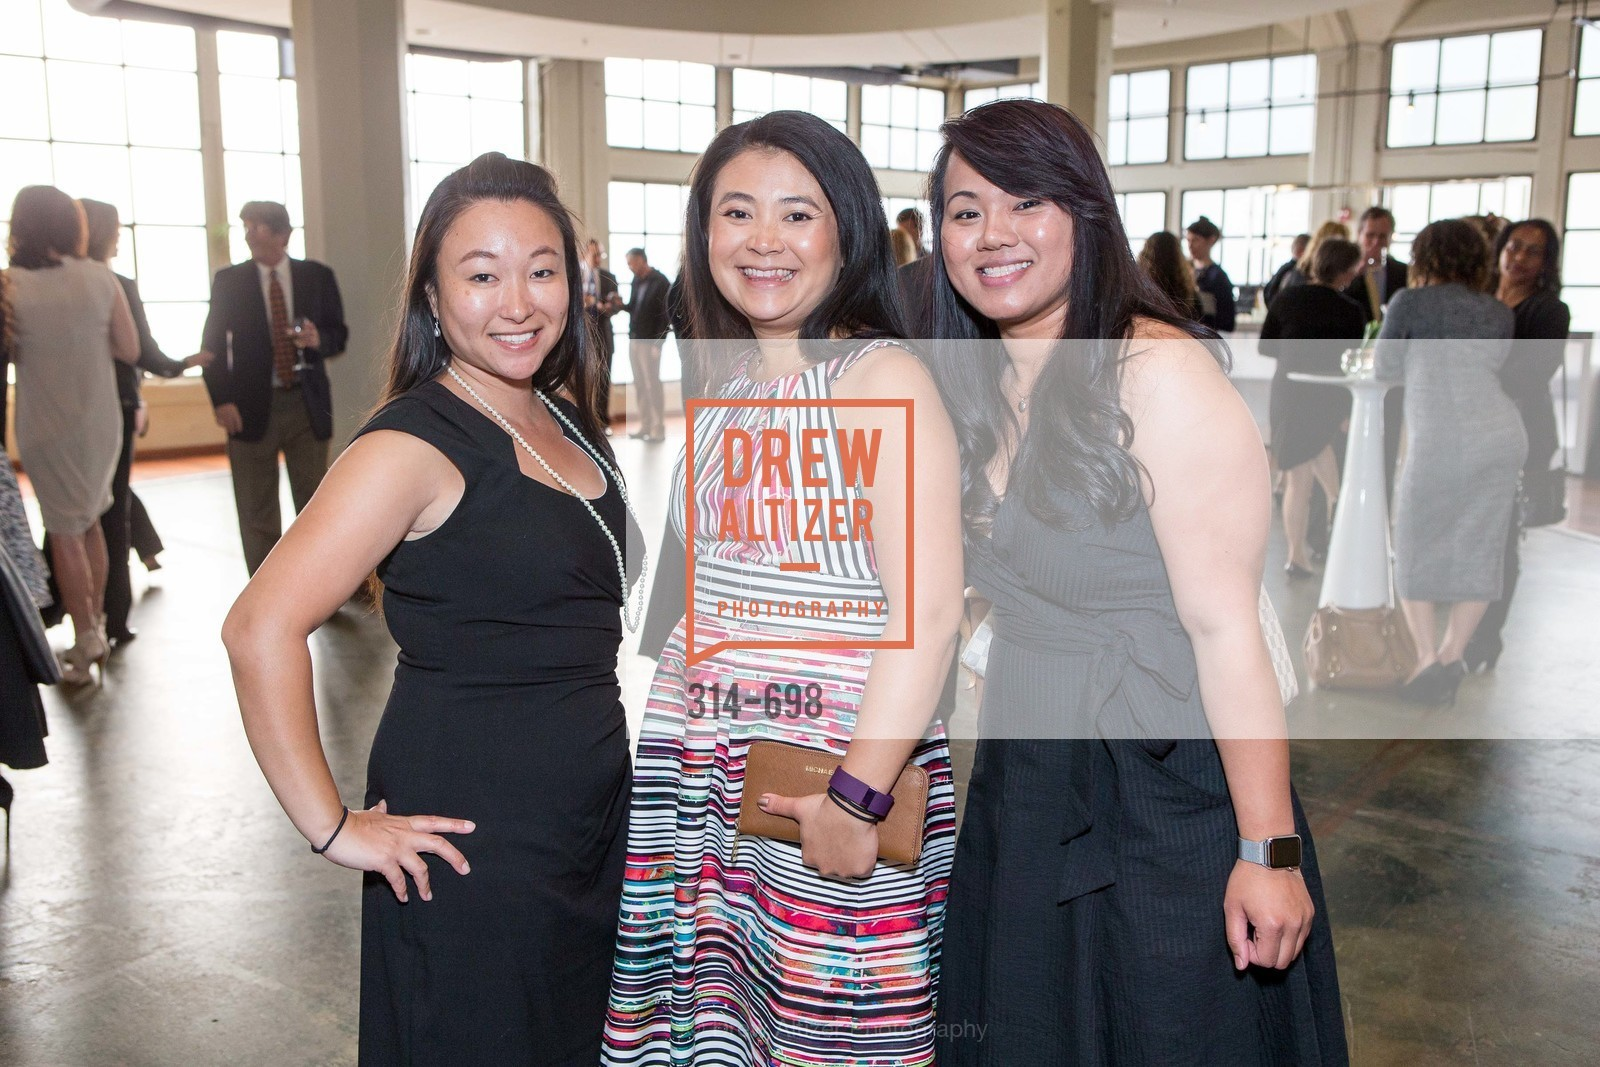 Lily Huang, Nini Lu, Tran Nguyen, EWG's 6th Annual Earth Dinner, US, May 6th, 2015,Drew Altizer, Drew Altizer Photography, full-service agency, private events, San Francisco photographer, photographer california